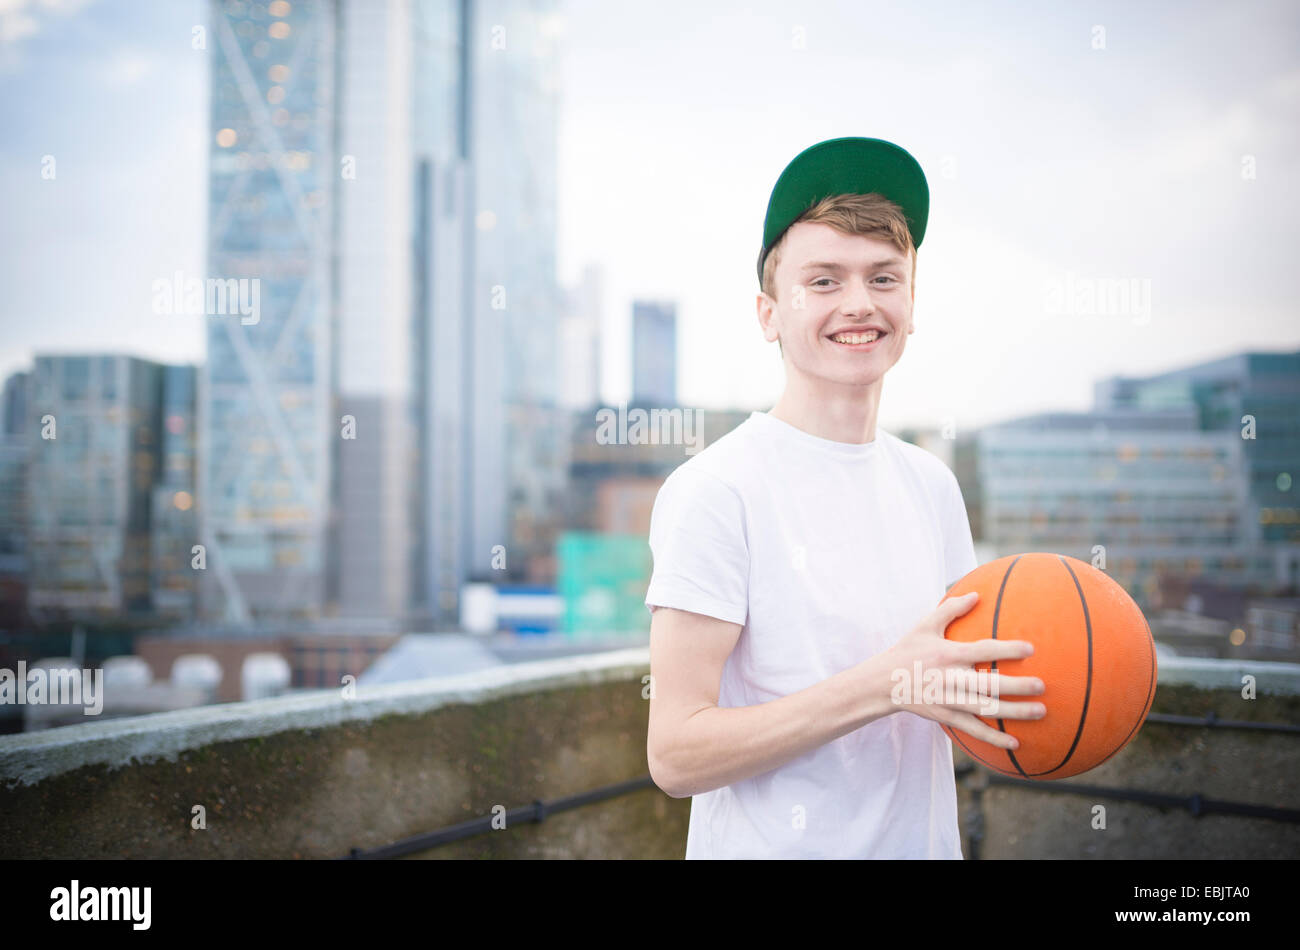 Teenage boy holding basketball - Stock Image